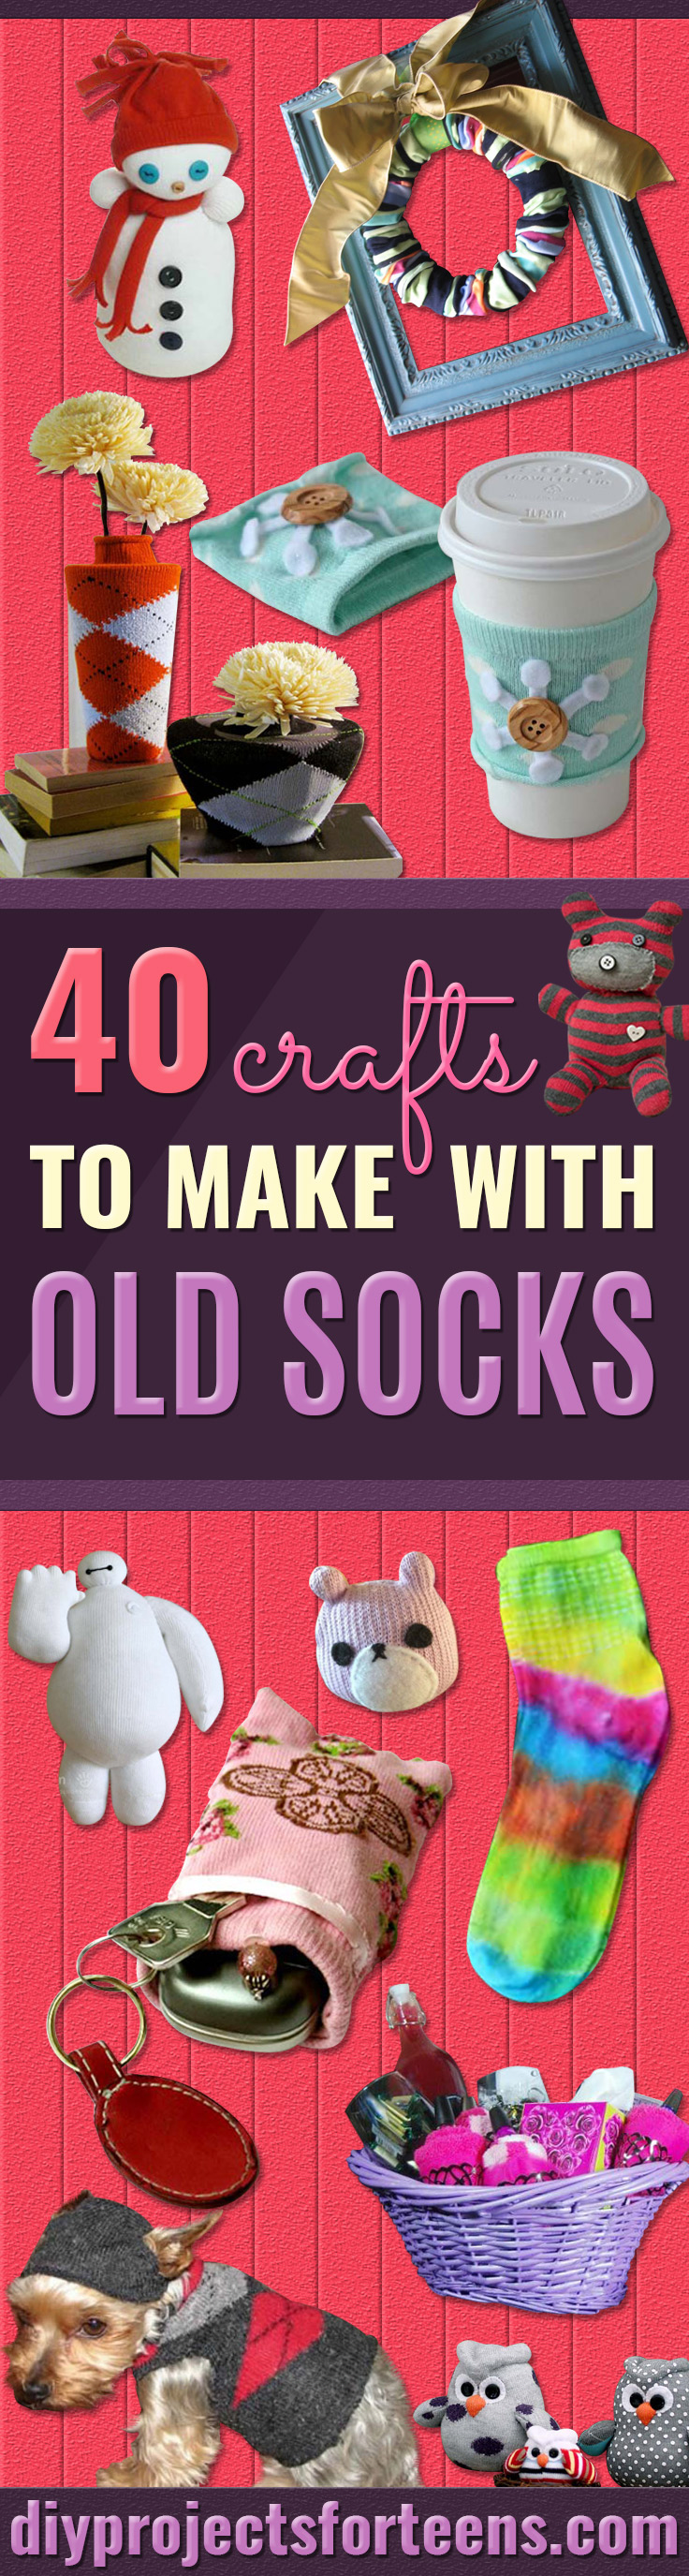 Cool Crafts Made With Old Socks - Fun DIY Projects and Gifts You Can Make With A Sock - Easy DIY Ideas for Teens, Teenagers, Kids and Adults - Step by Step Tutorials and Instructions for Making Room Decor, Animals, Cat, Rabbit, Owl, Puppets, Snowman, Gloves